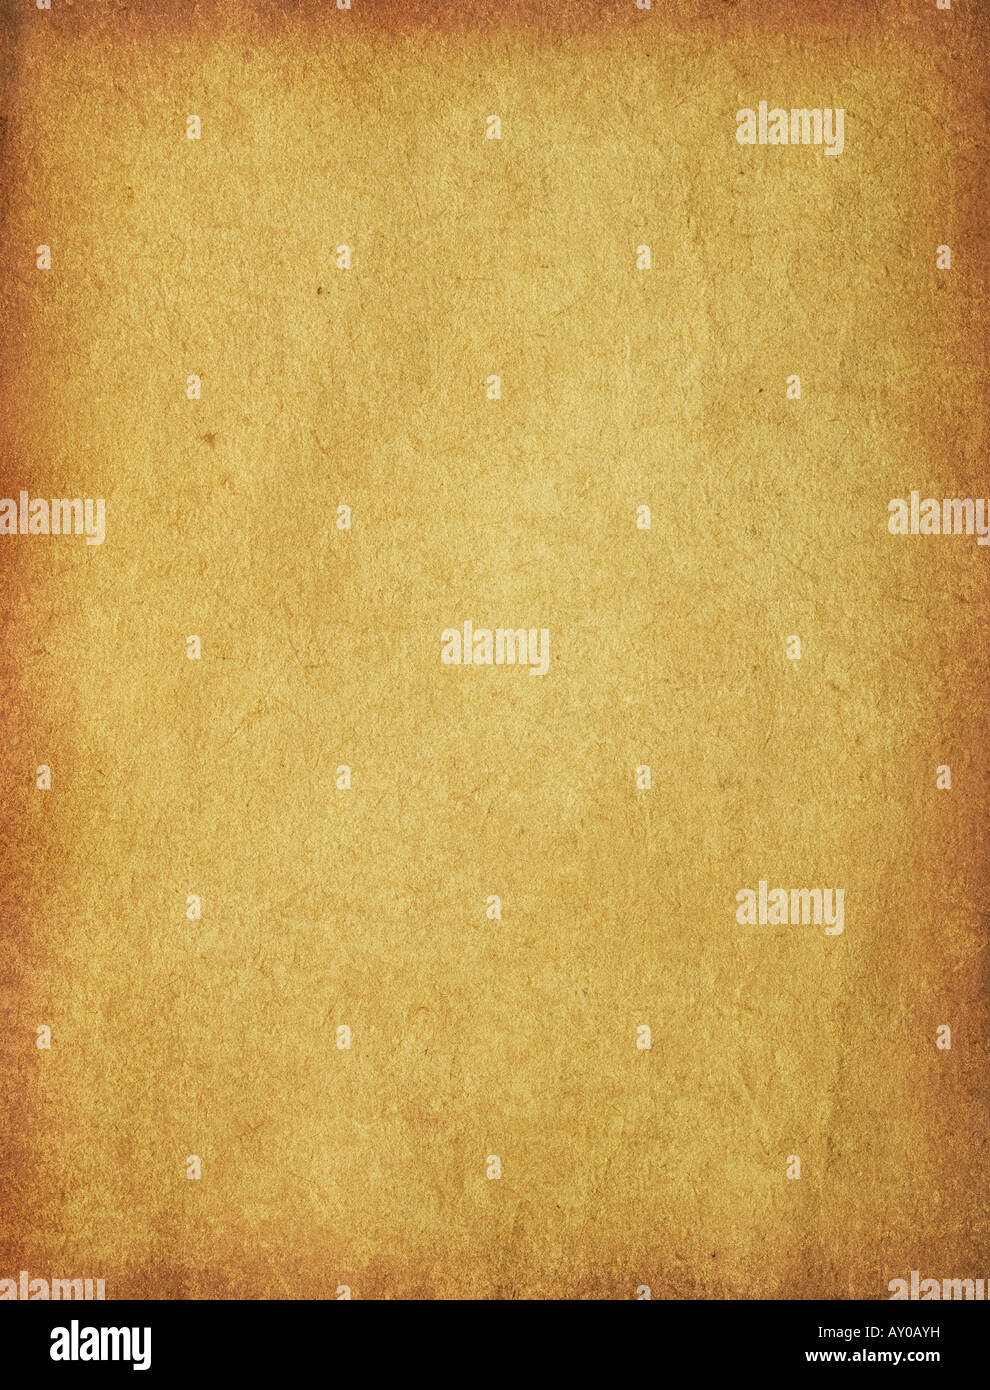 vintage paper perfect textured background - Stock Image